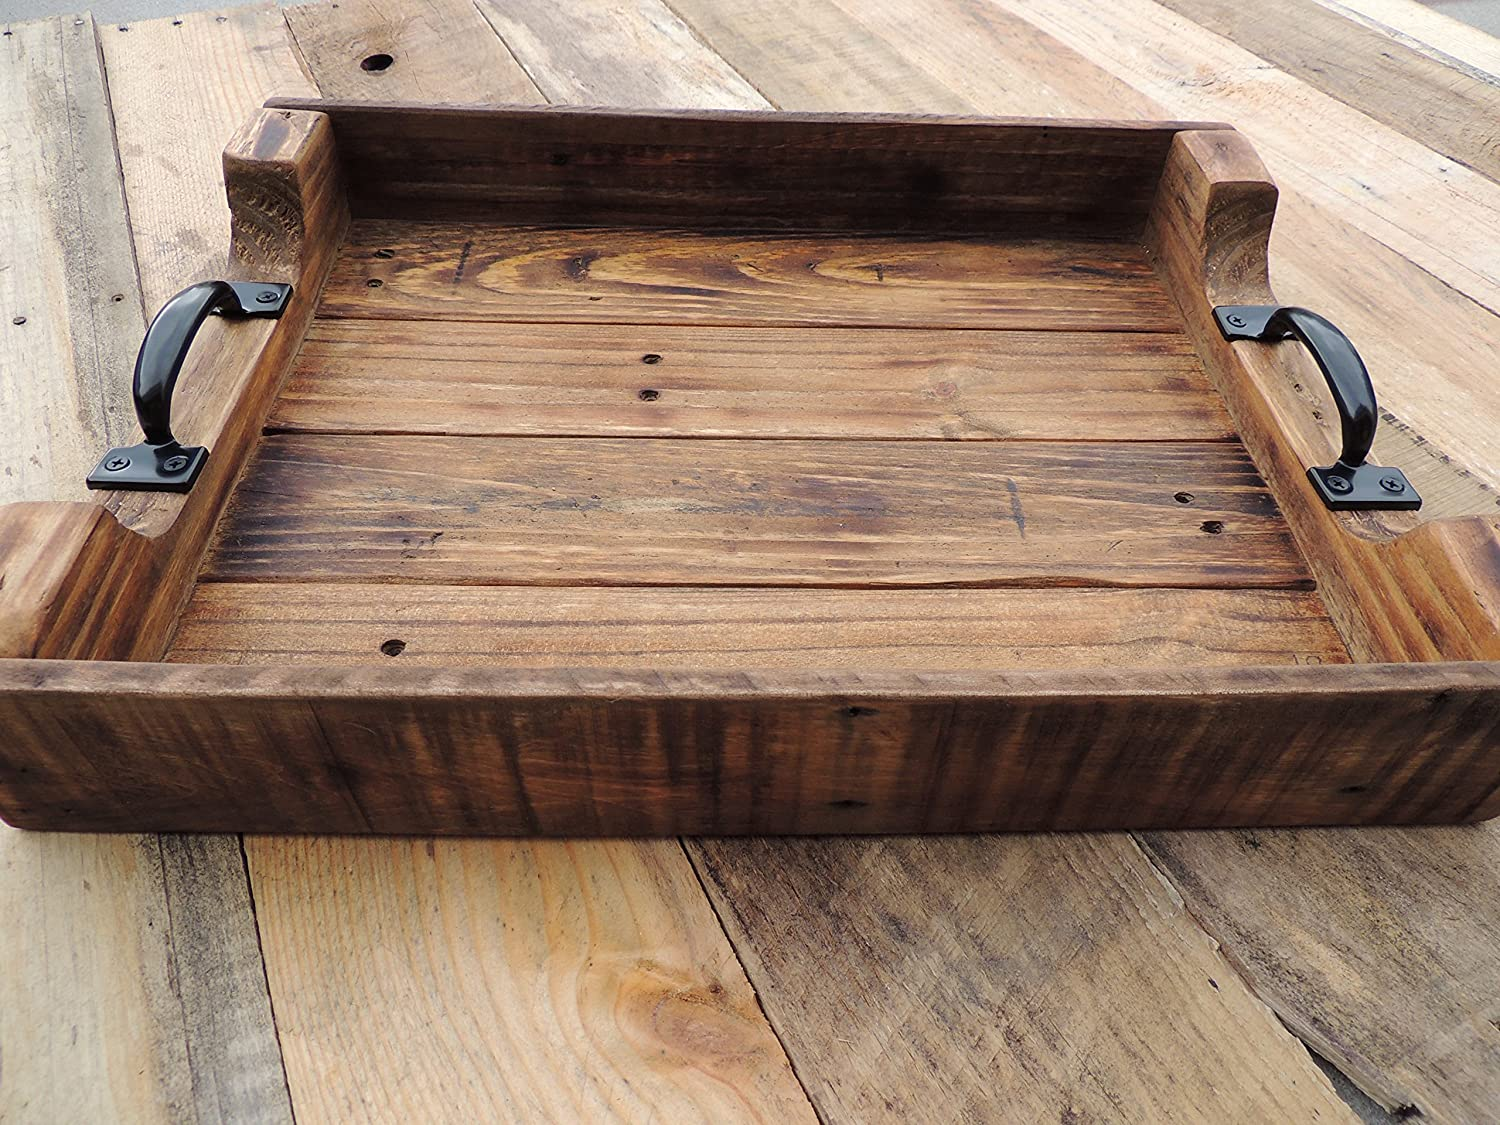 - Amazon.com: Rustic Wood Coffee Table Ottoman Serving Tray - Large